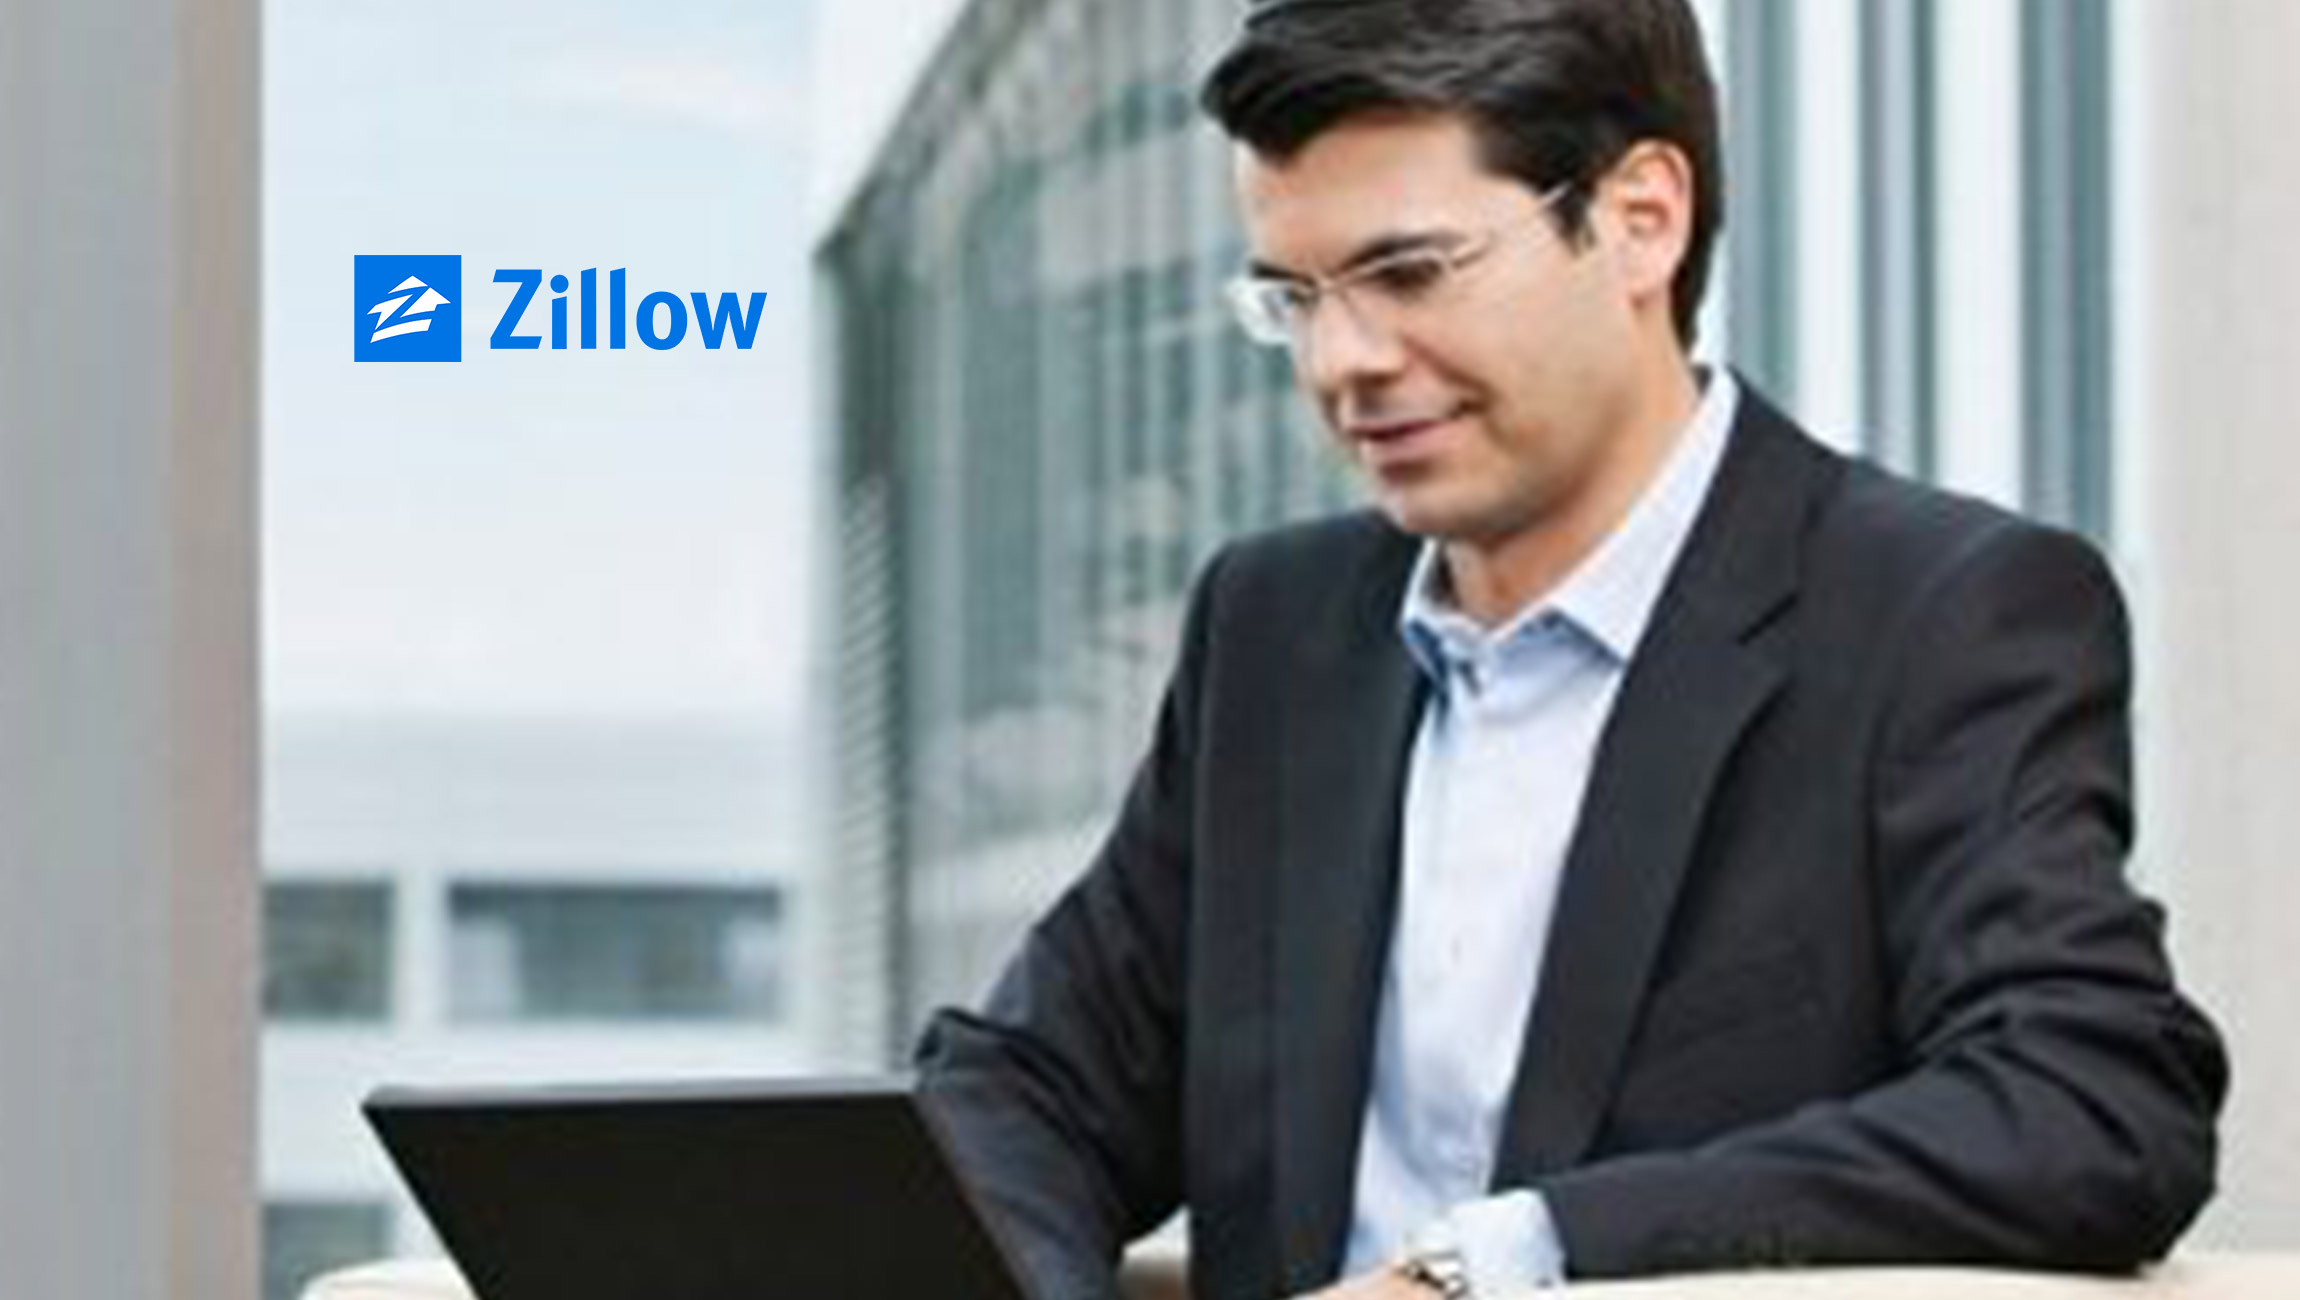 Zillow to Award $1 Million Prize for an Improved Zestimate Later This Month